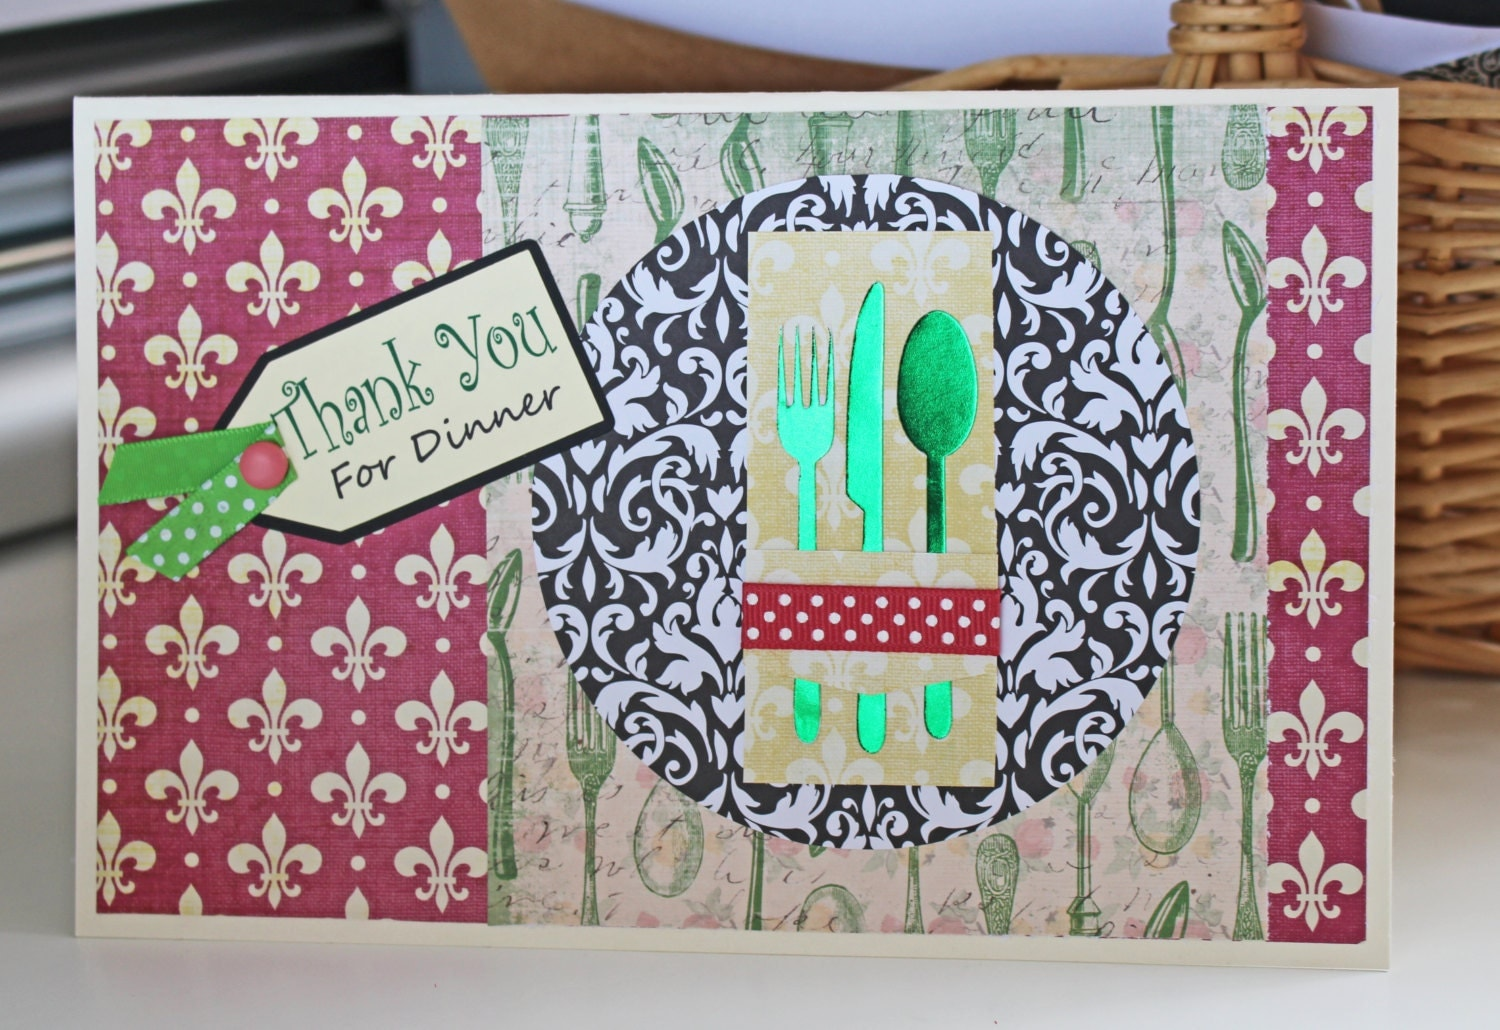 Thank You for Dinner Card - Hostess Card, Place Setting ...